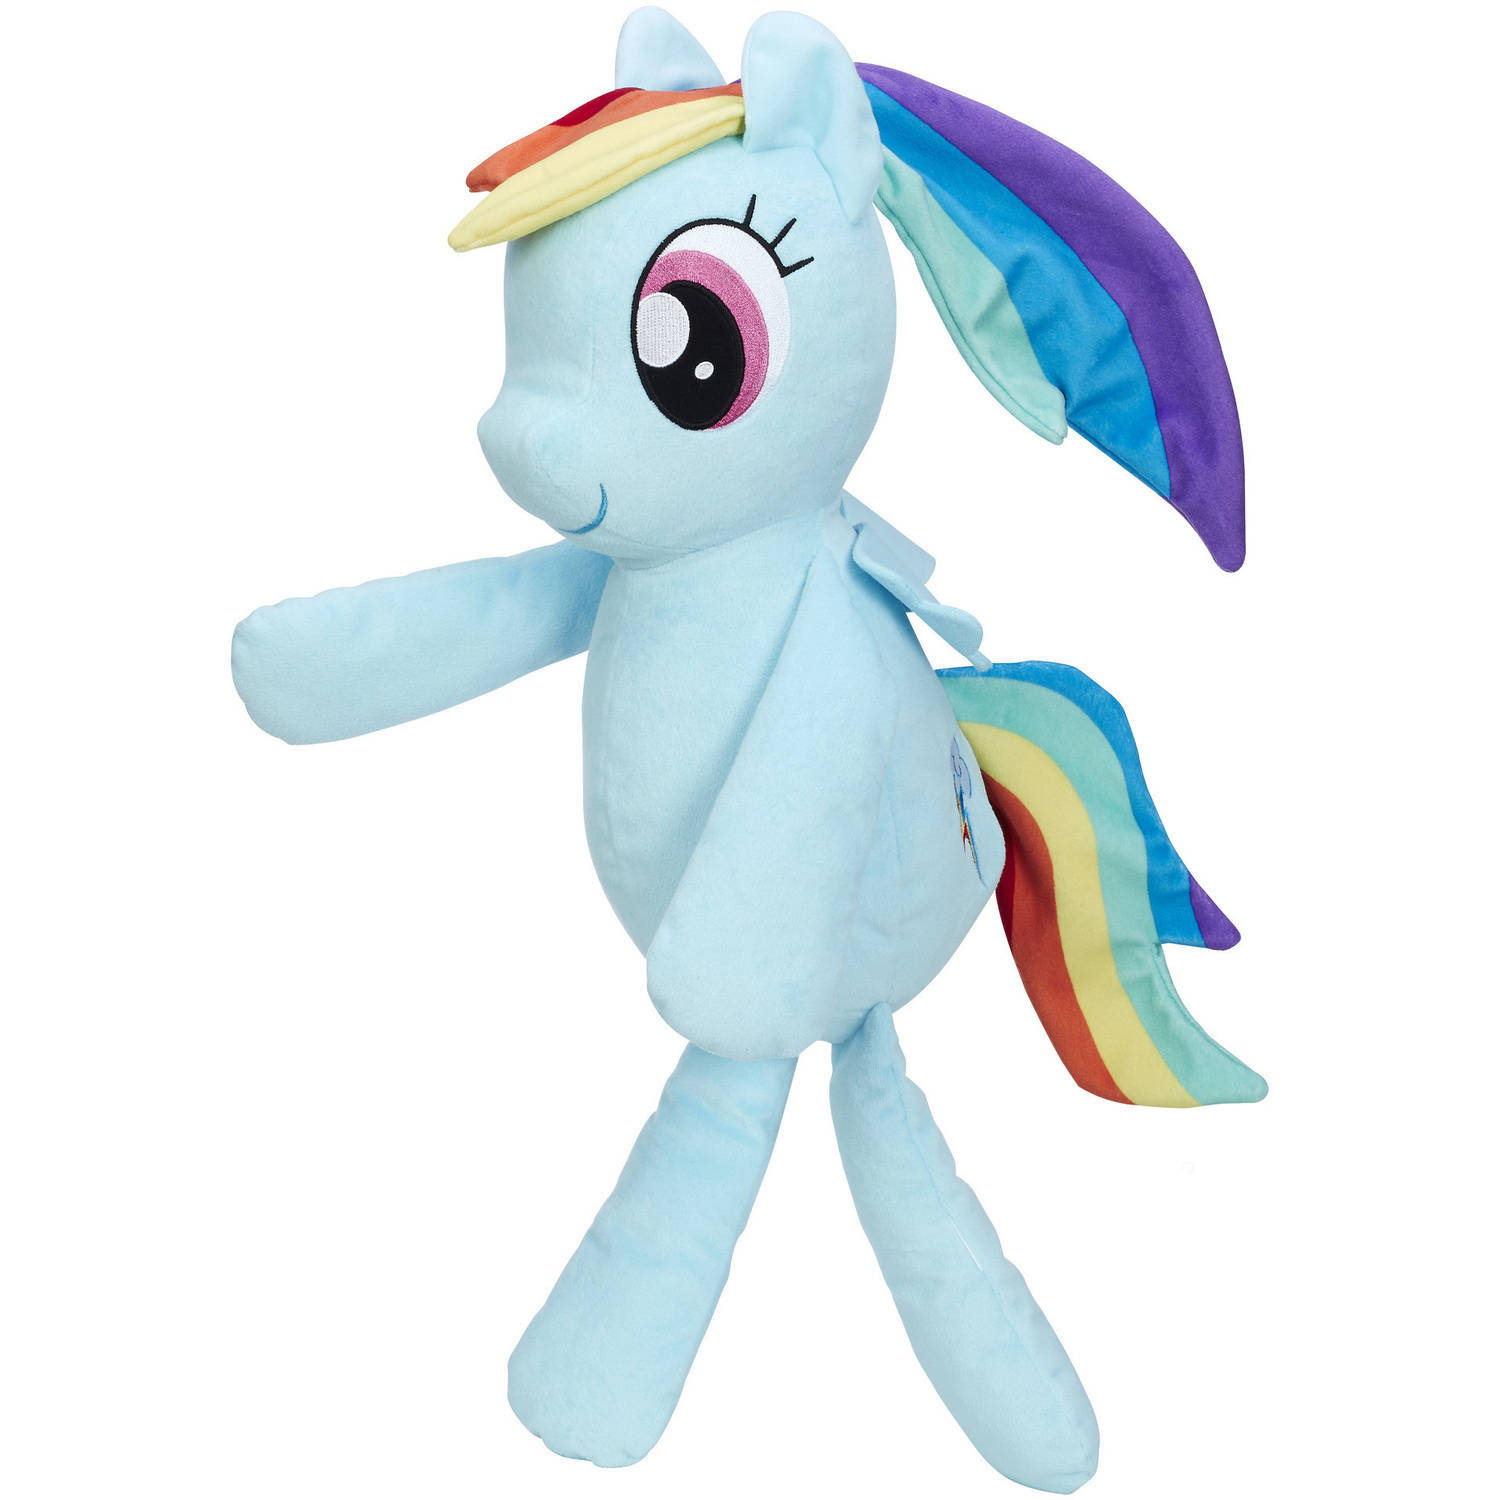 My Little Pony Friendship is Magic Rainbow Dash Huggable Plush by Hasbro